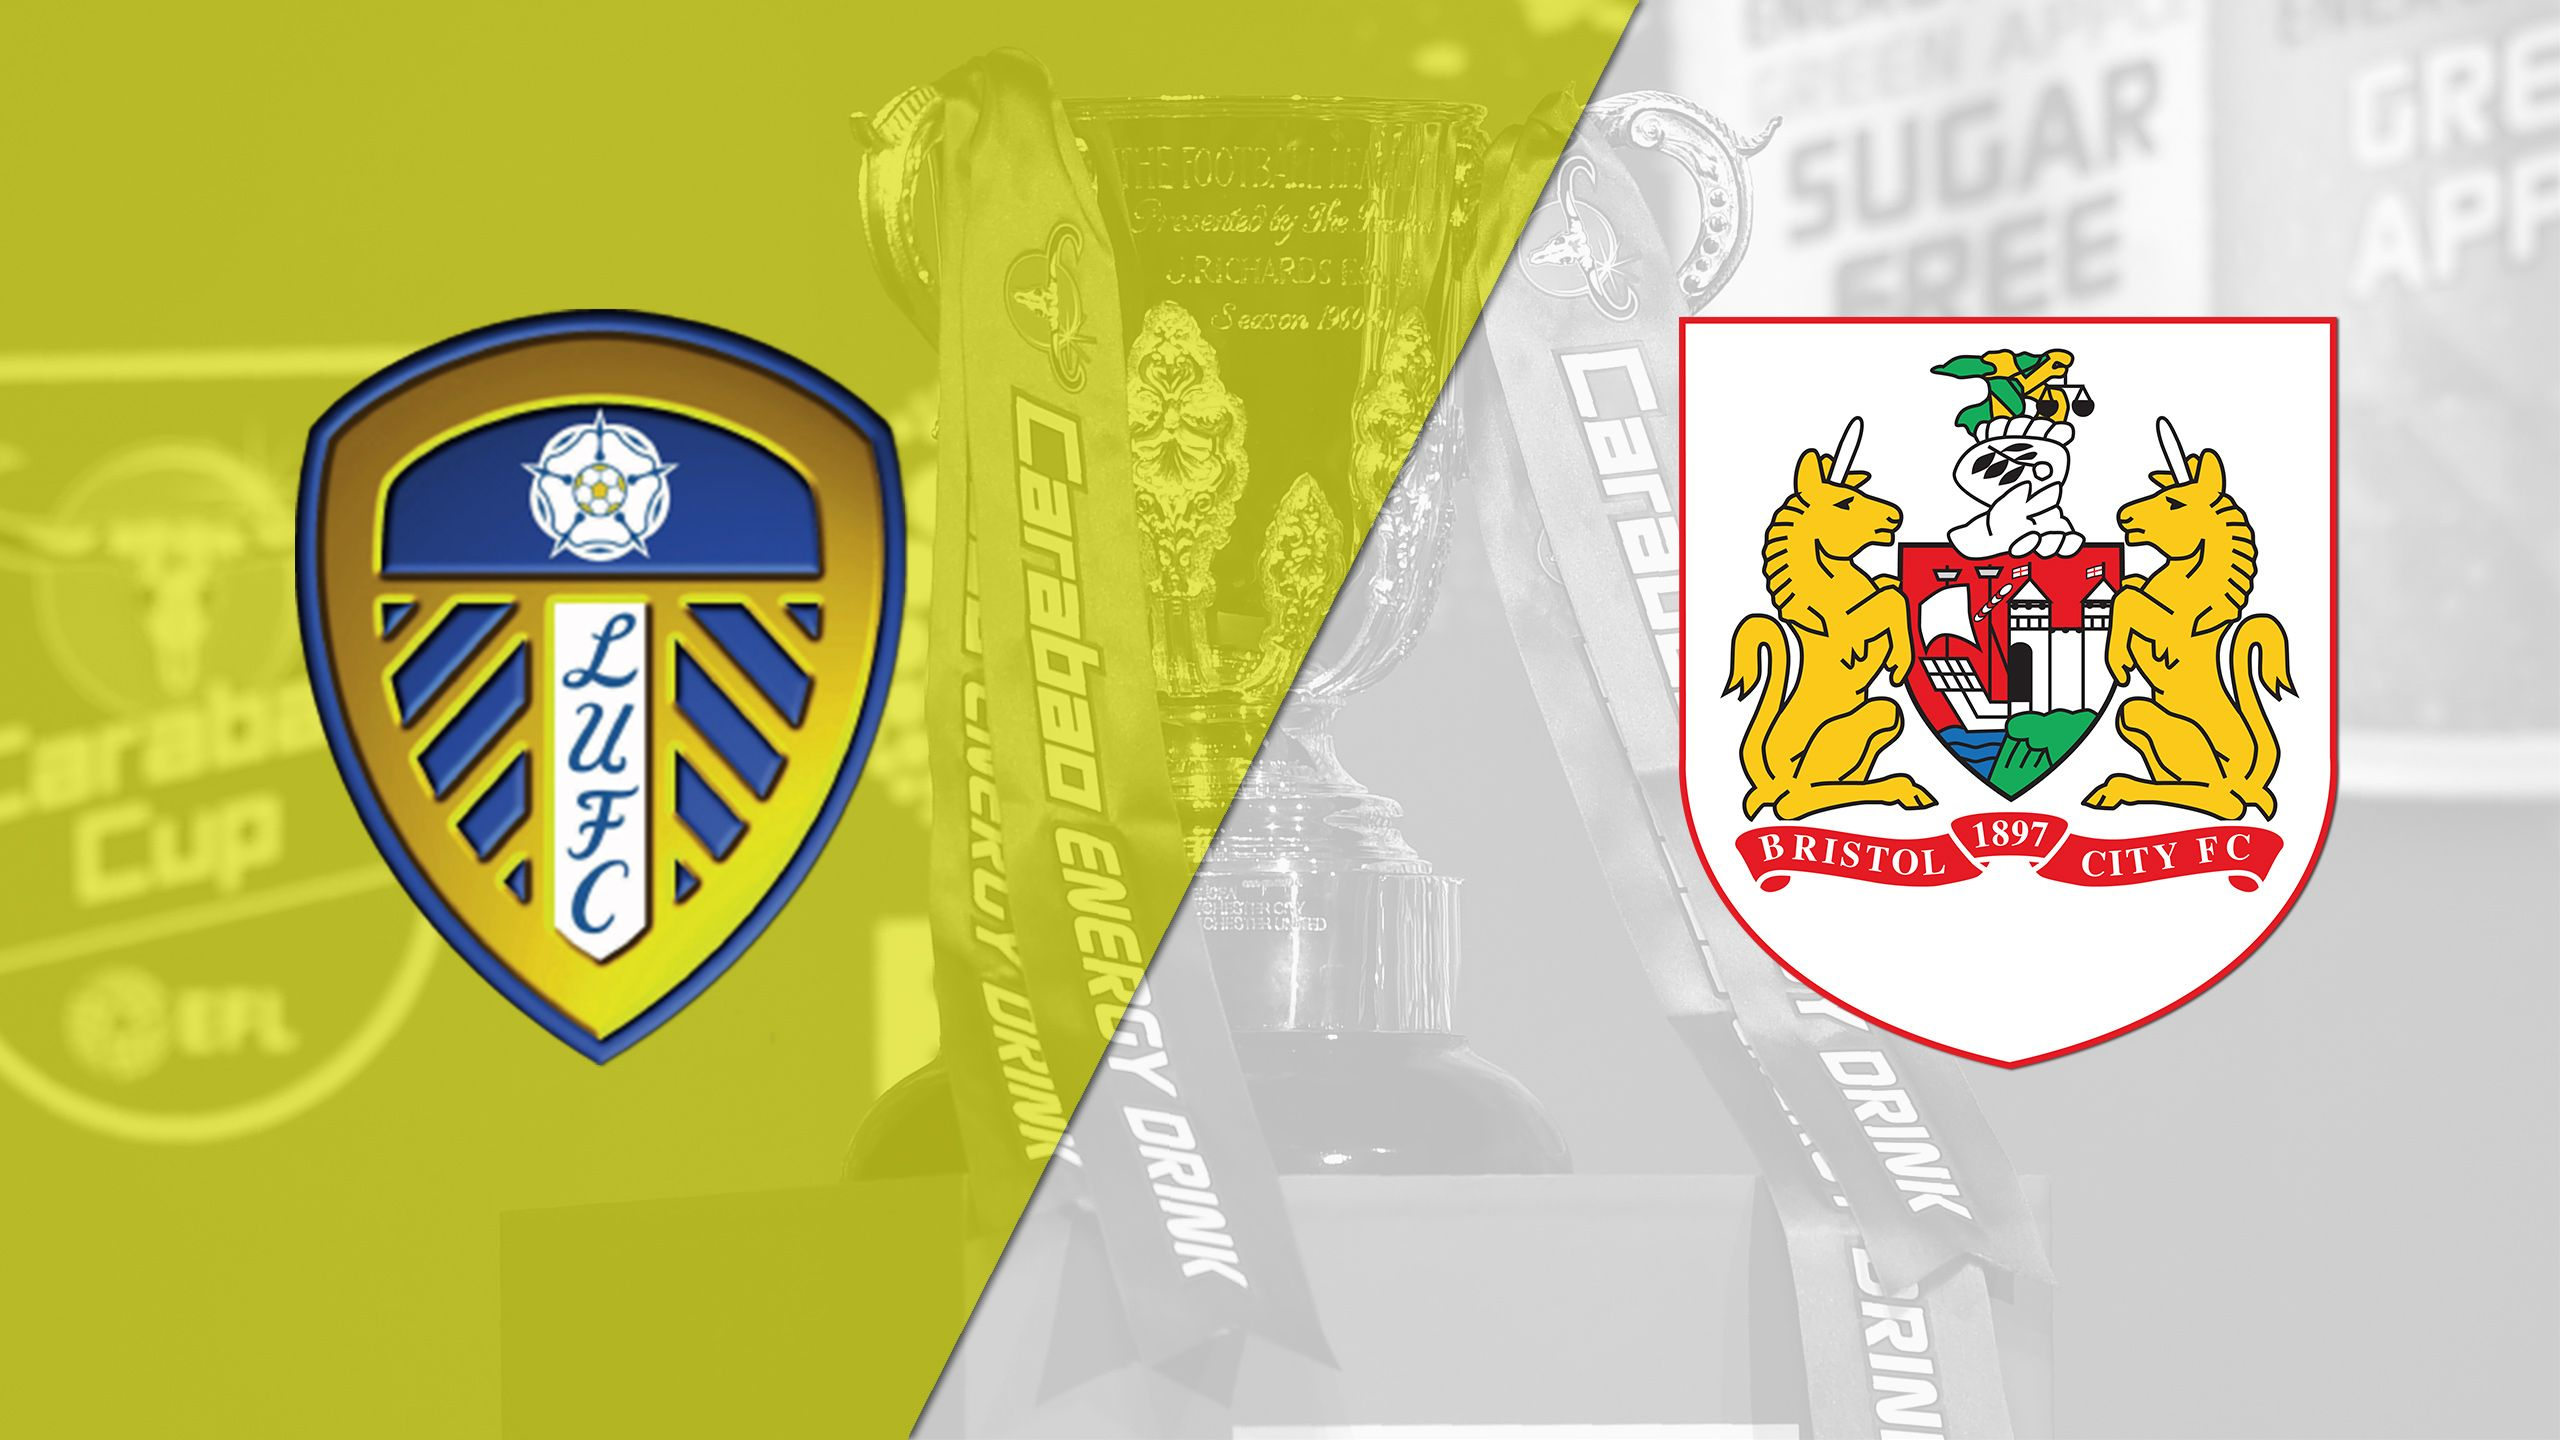 Leeds United vs. Bristol City (English League Championship)